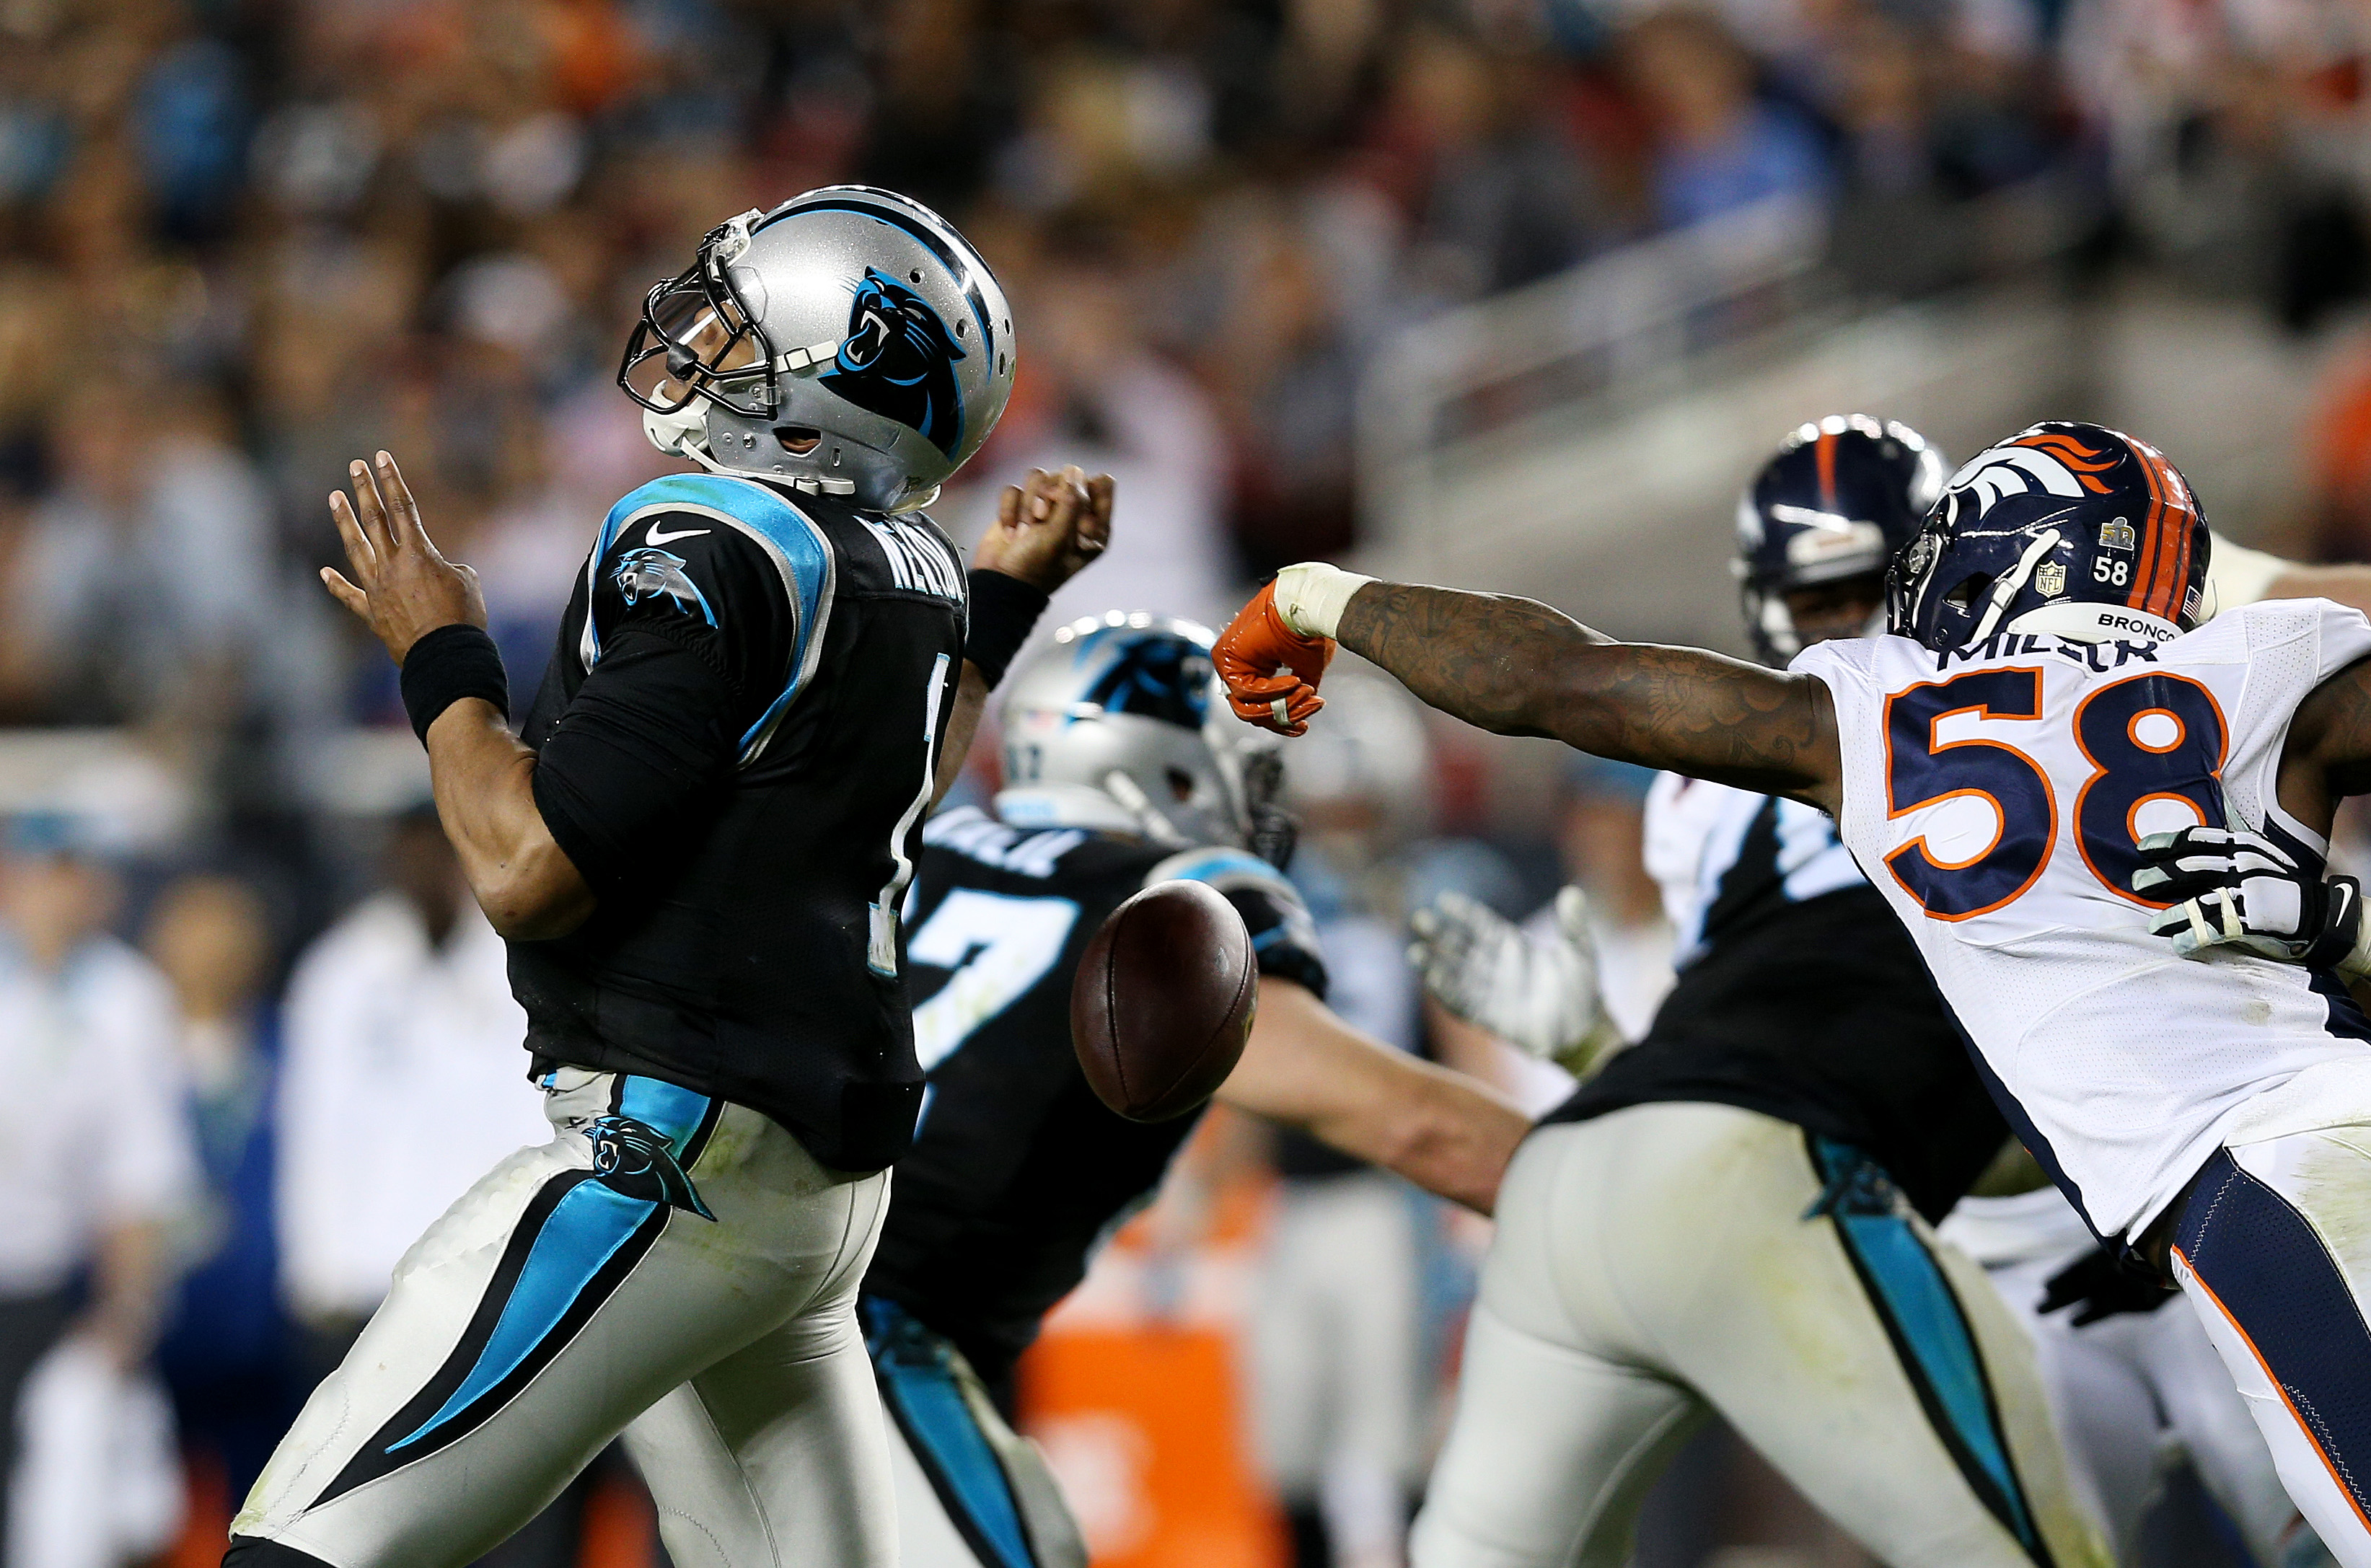 508989830-super-bowl-50-carolina-panthers-v-denver-broncos.jpg